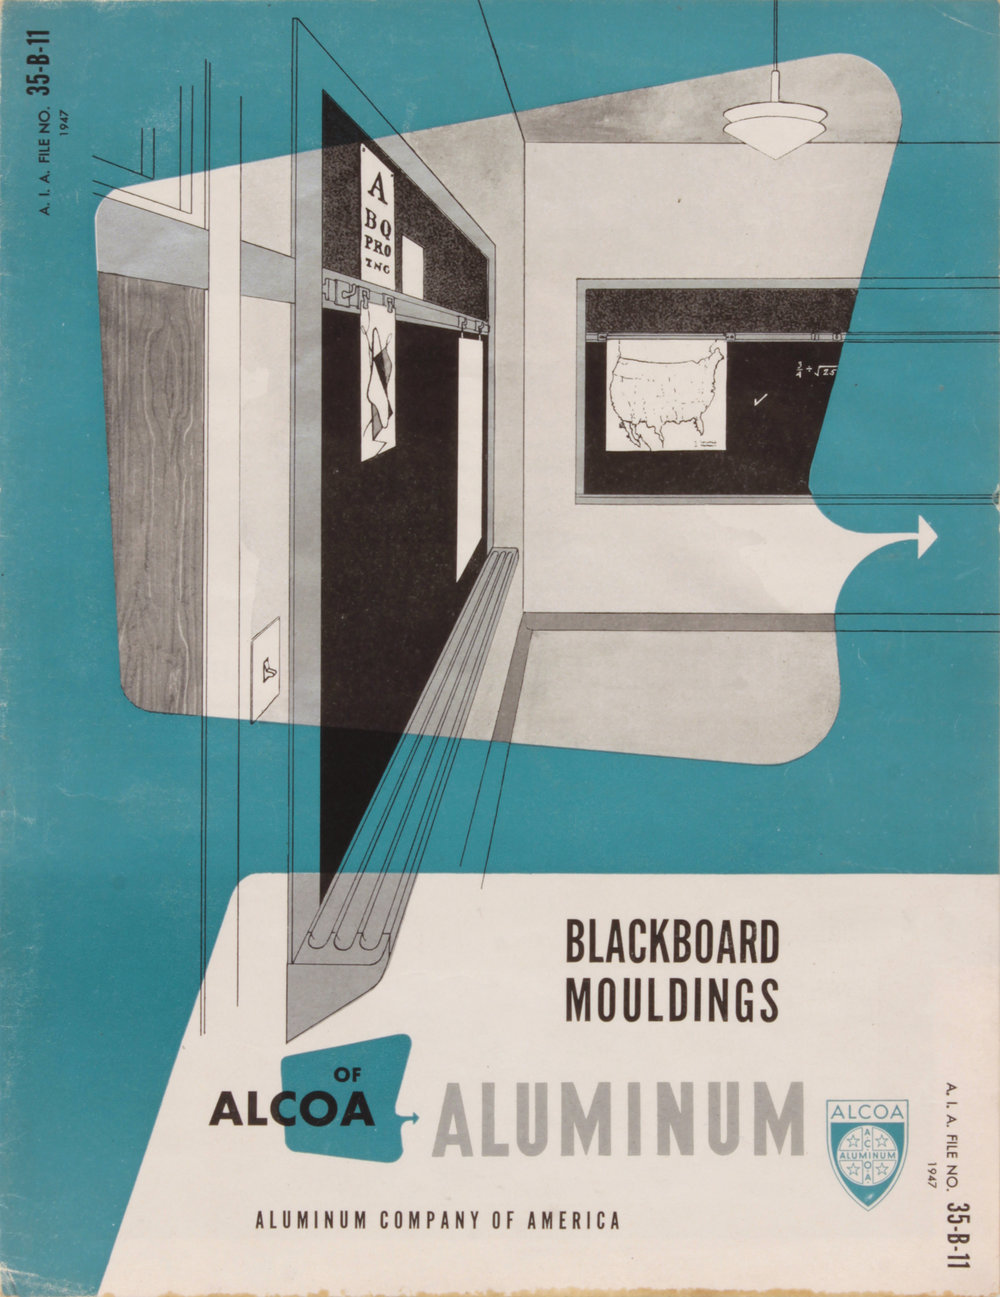 11. 1947, Alcoa Aluminum, Blackboard Mouldings, Design by Robert Lepper, Executed partly by Philip Pearlstein, 11x8 1:2, PPS 1576.JPG